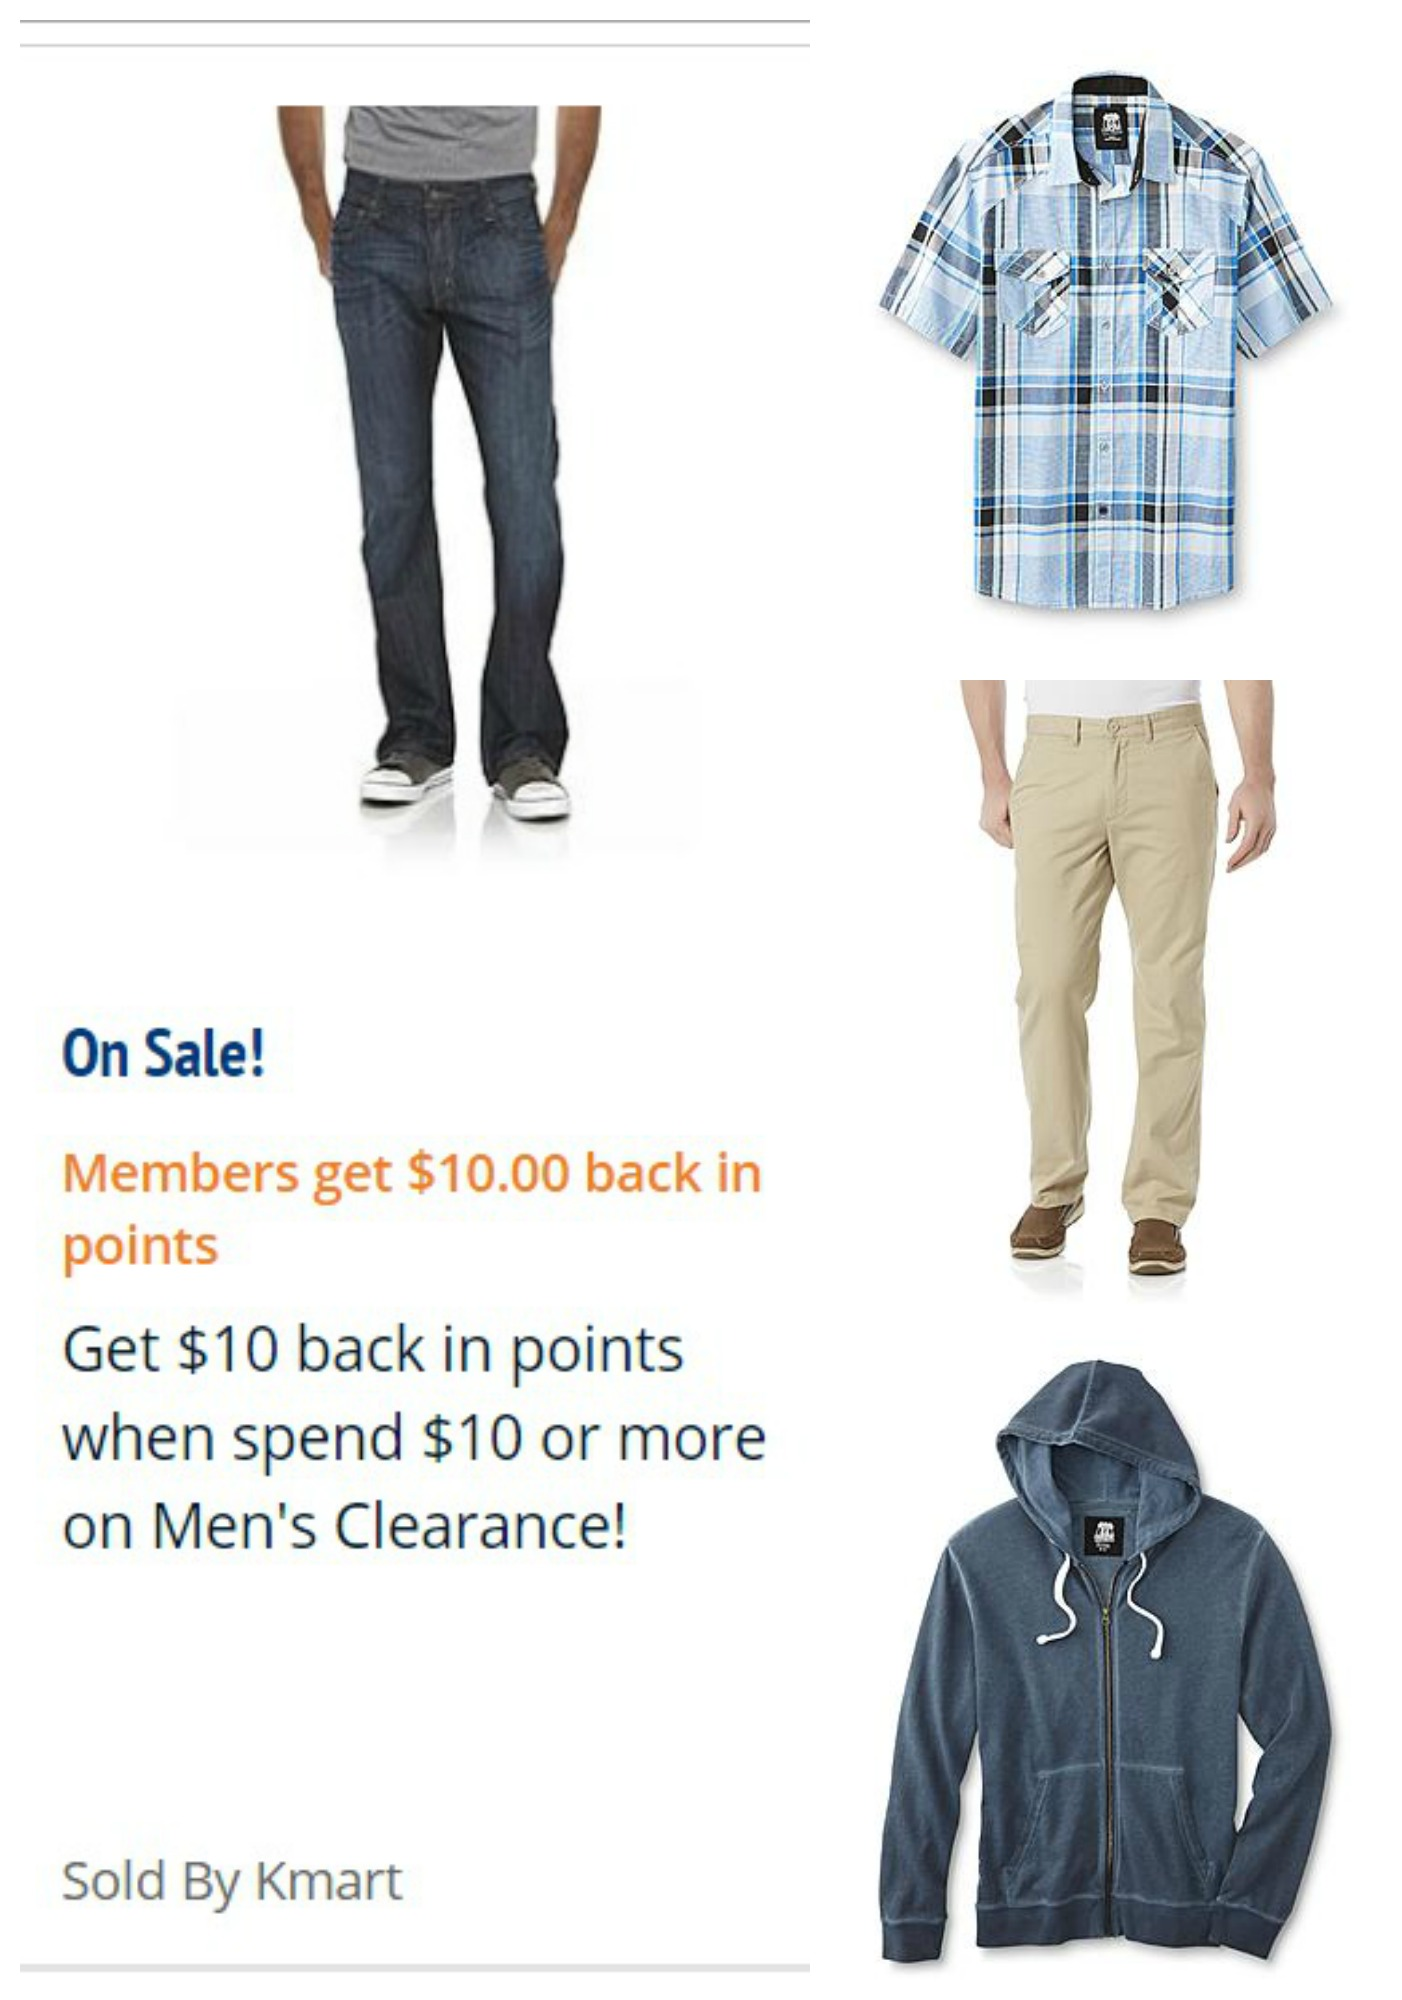 04e02b0cd500 Kmart: Spend $10 on Men's Clearance & get $10 back in Shop Your Way Points!